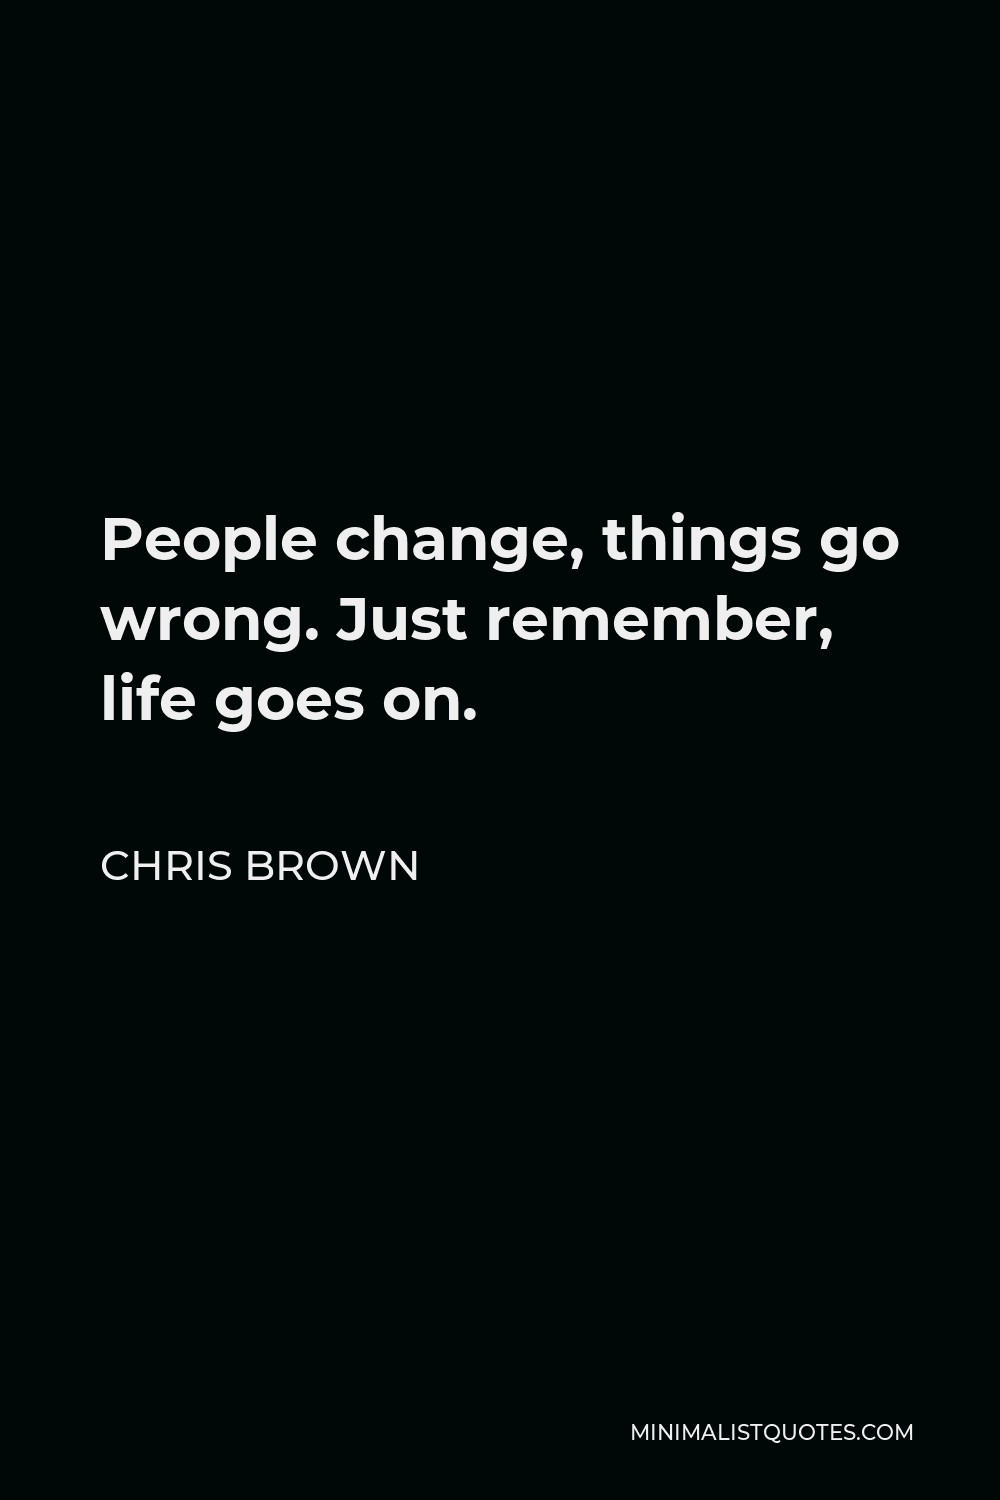 Chris Brown Quote - People change, things go wrong. Just remember, life goes on.